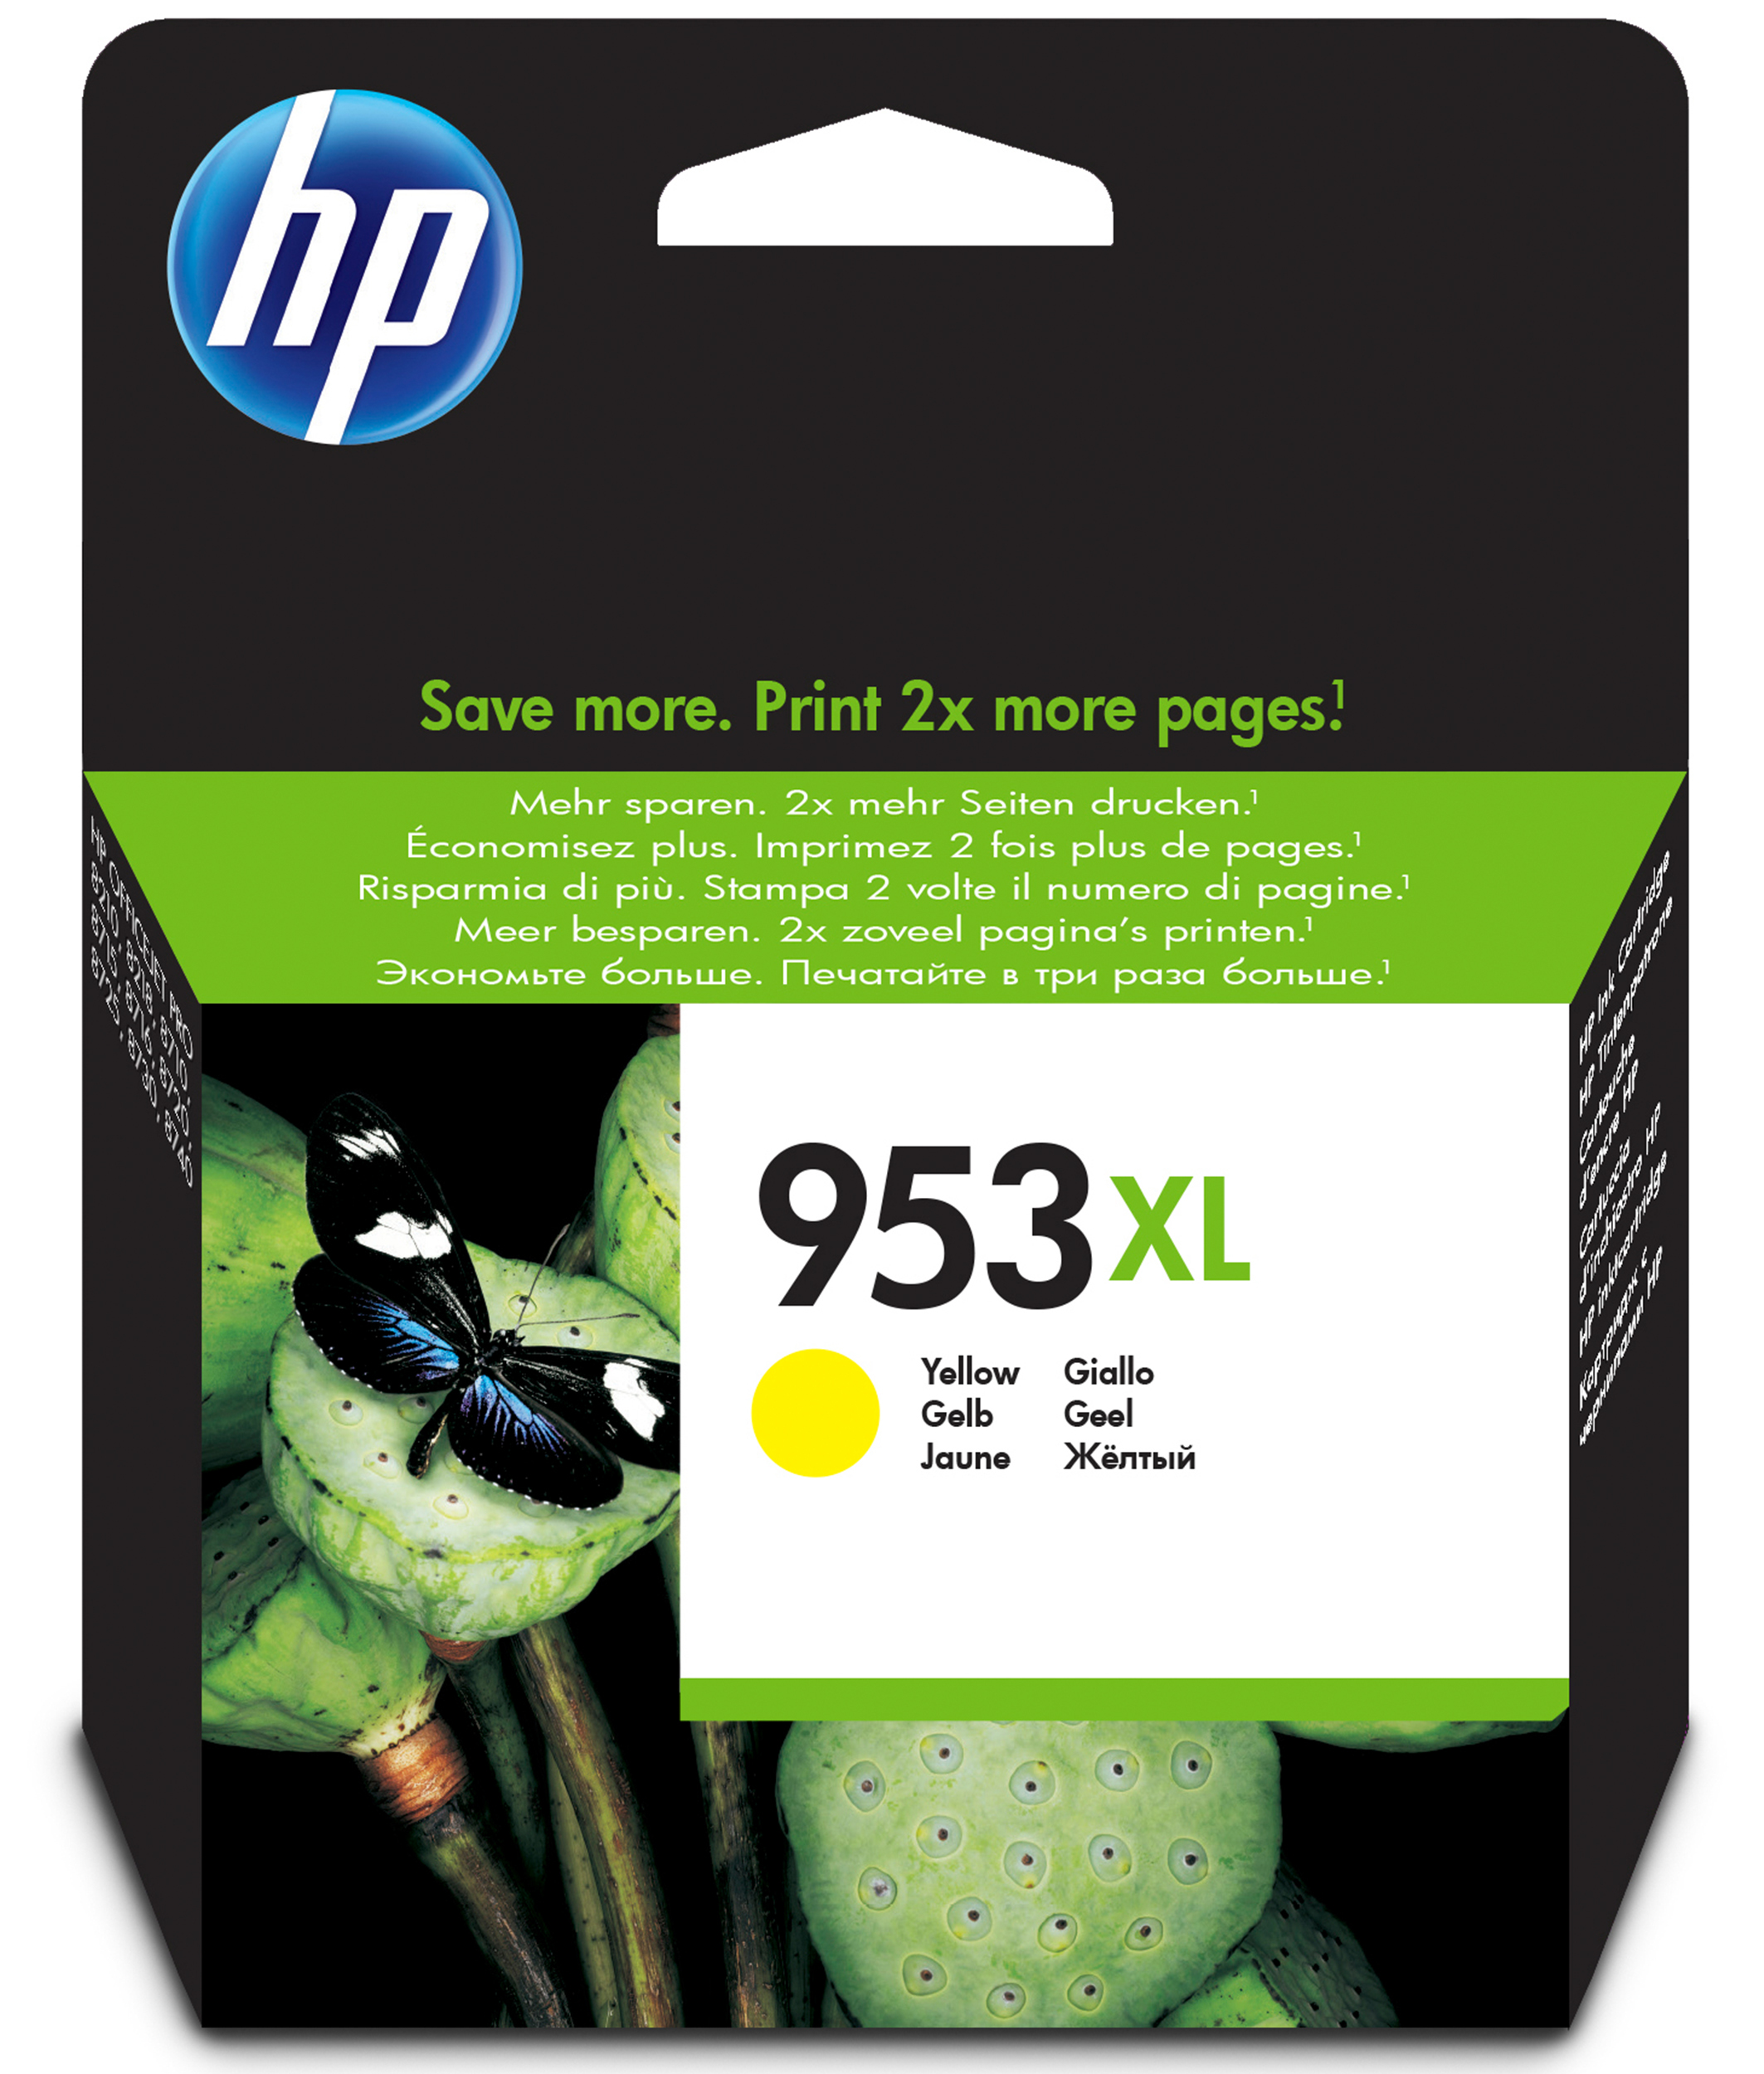 Hpf6u18ae      Hp 953xl Yellow Ink Cartridge  High Yield                                                   - UF01